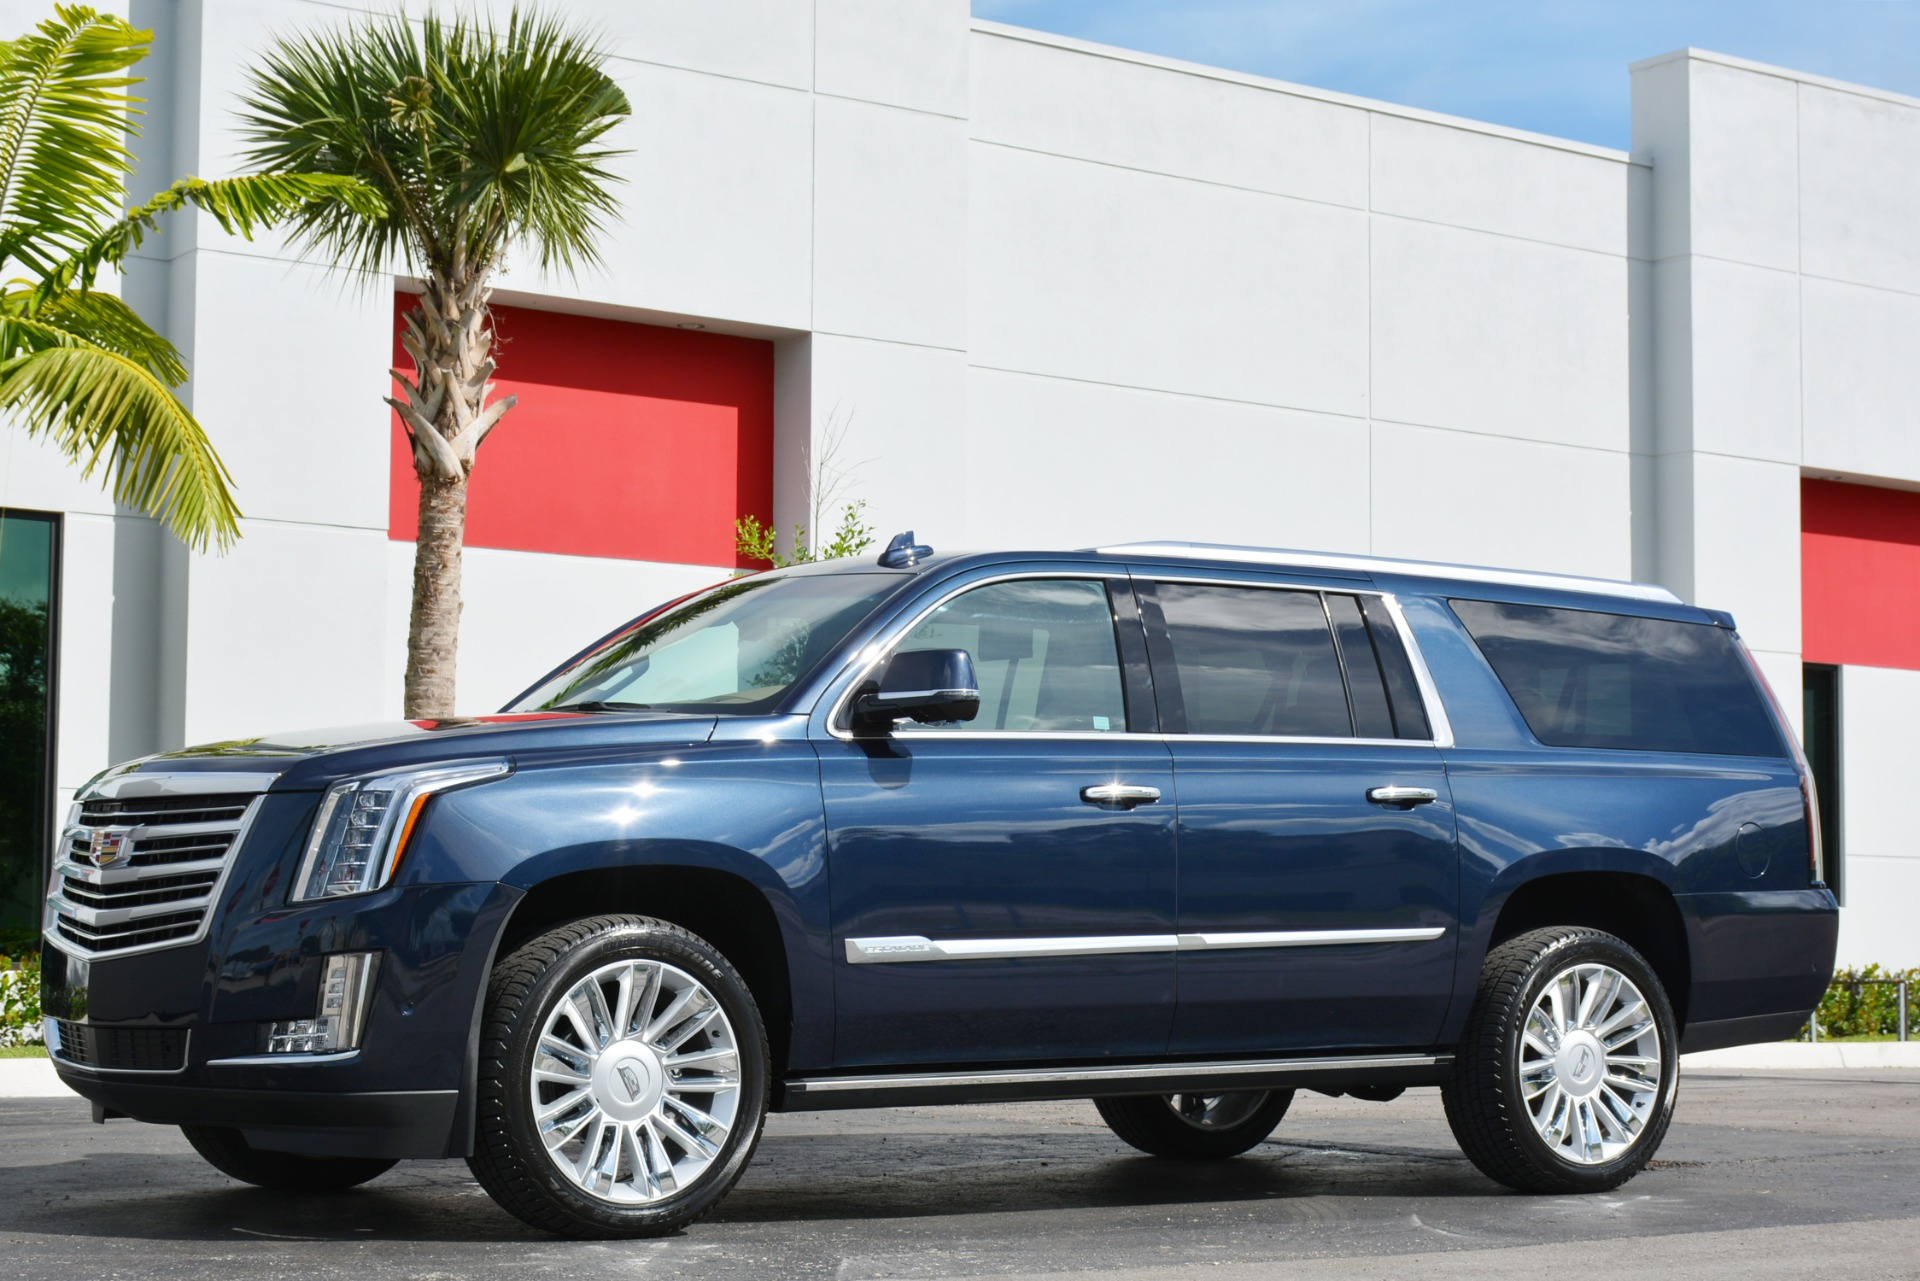 Used Cadillac Escalade For Sale >> Used 2018 Cadillac Escalade ESV Platinum For Sale ($89,900) | Marino Performance Motors Stock ...